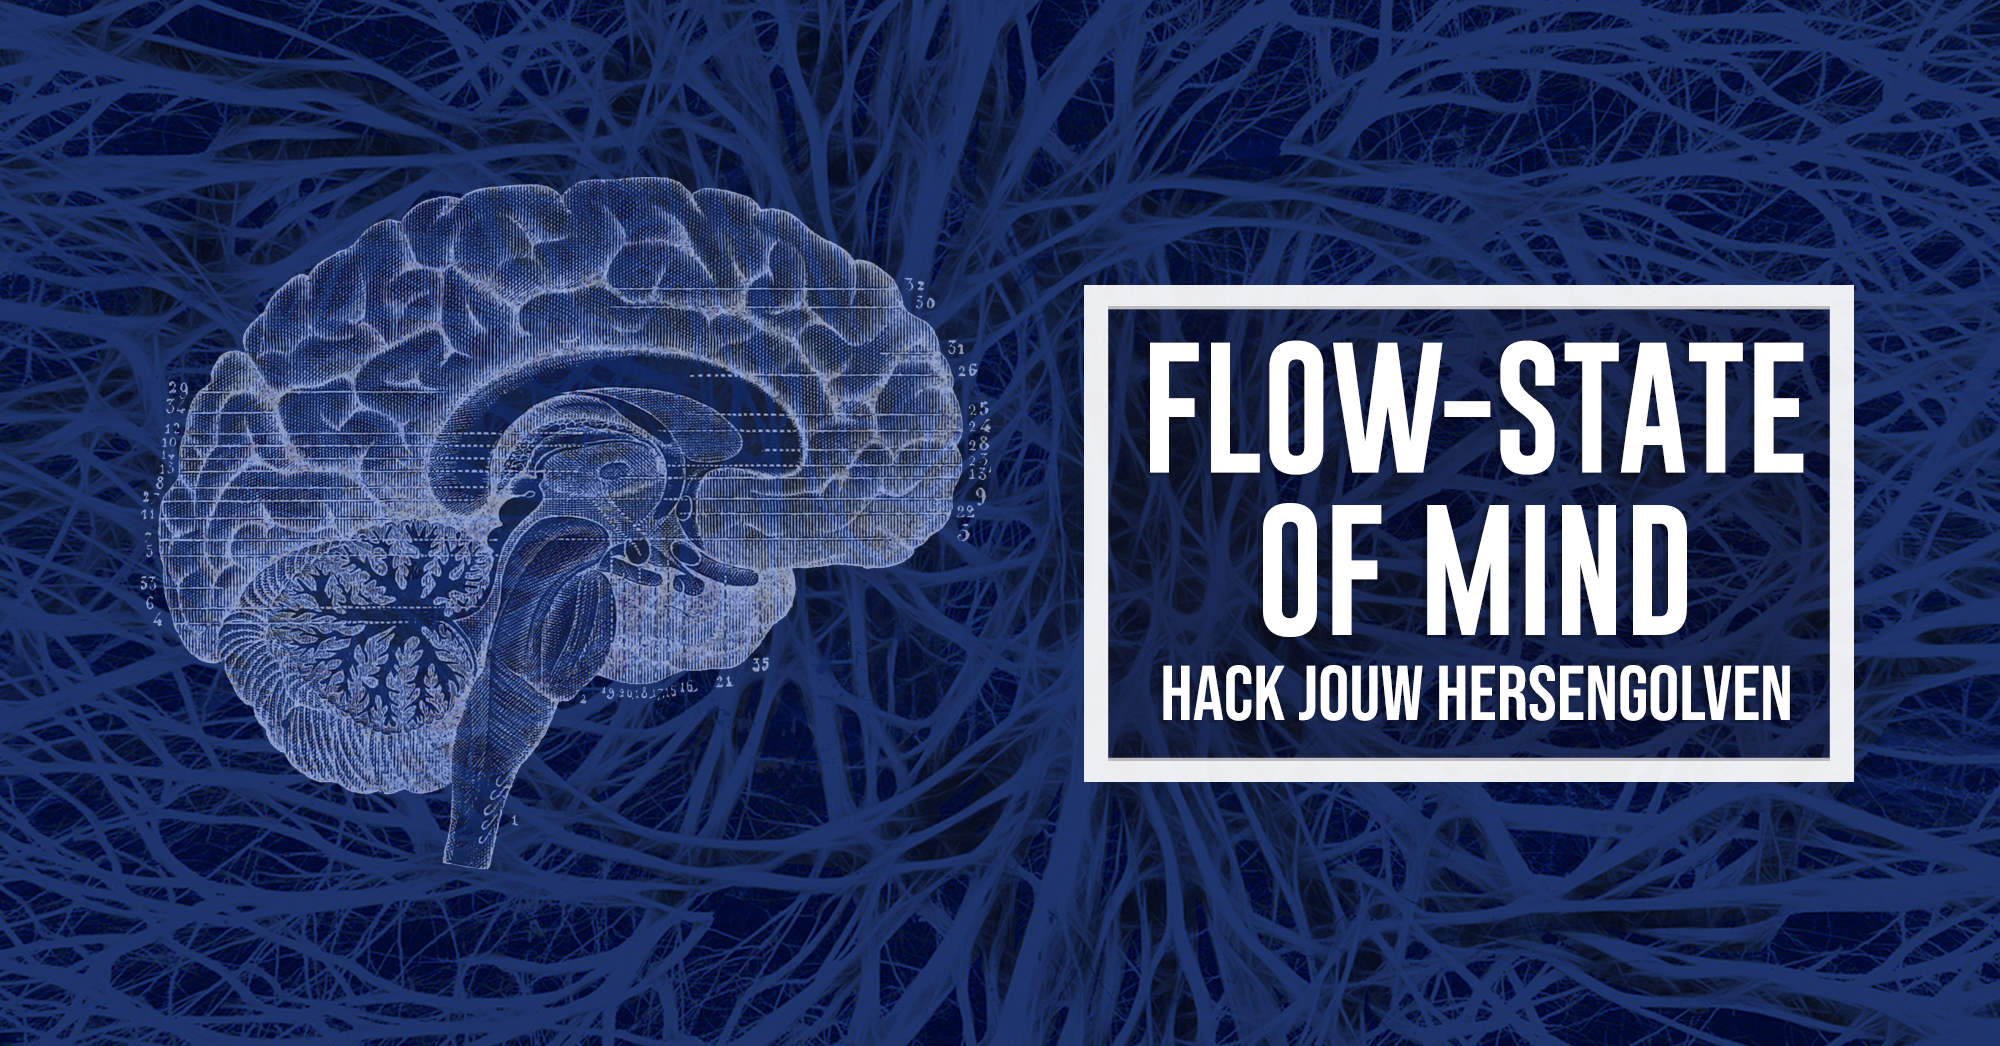 De Flow State of Mind | hack jouw hersengolven